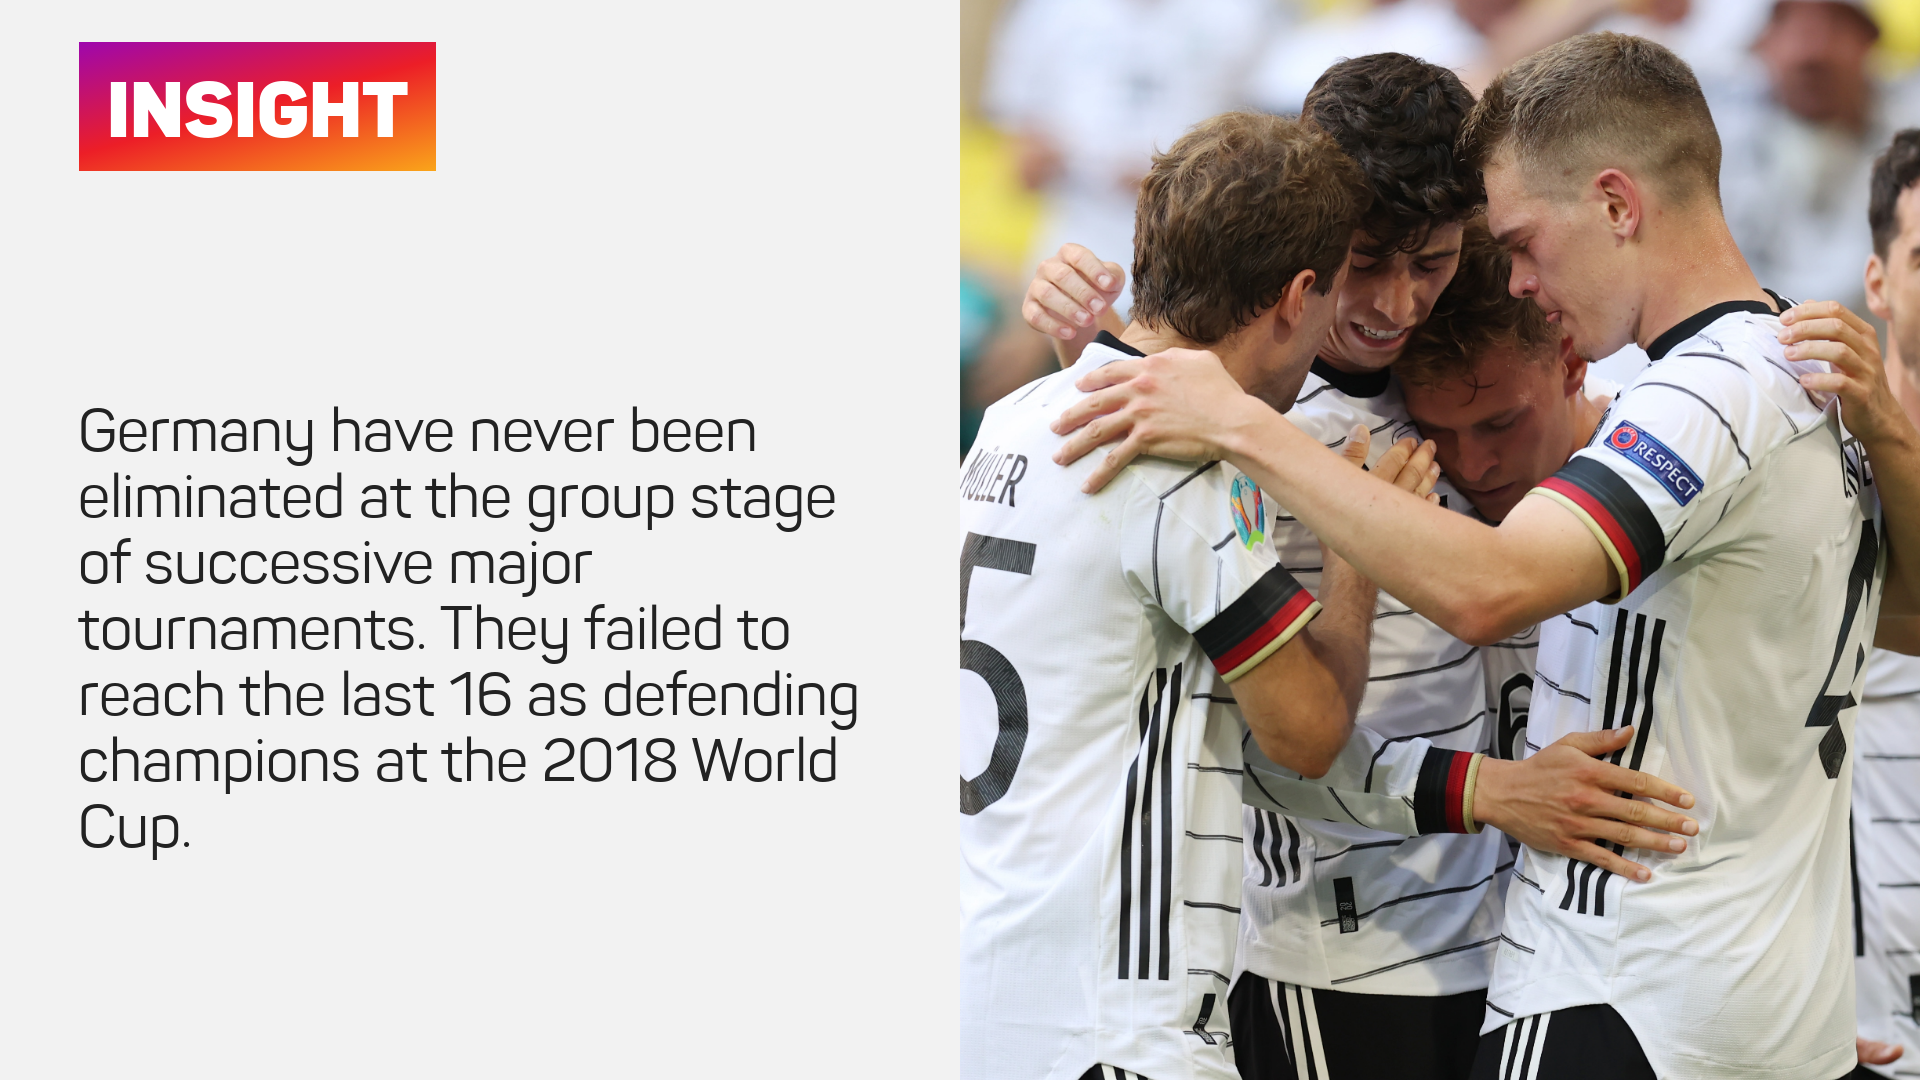 Germany have never been eliminated at the group stage of successive major tournaments. They failed to reach the last 16 as defending champions at the 2018 World Cup.